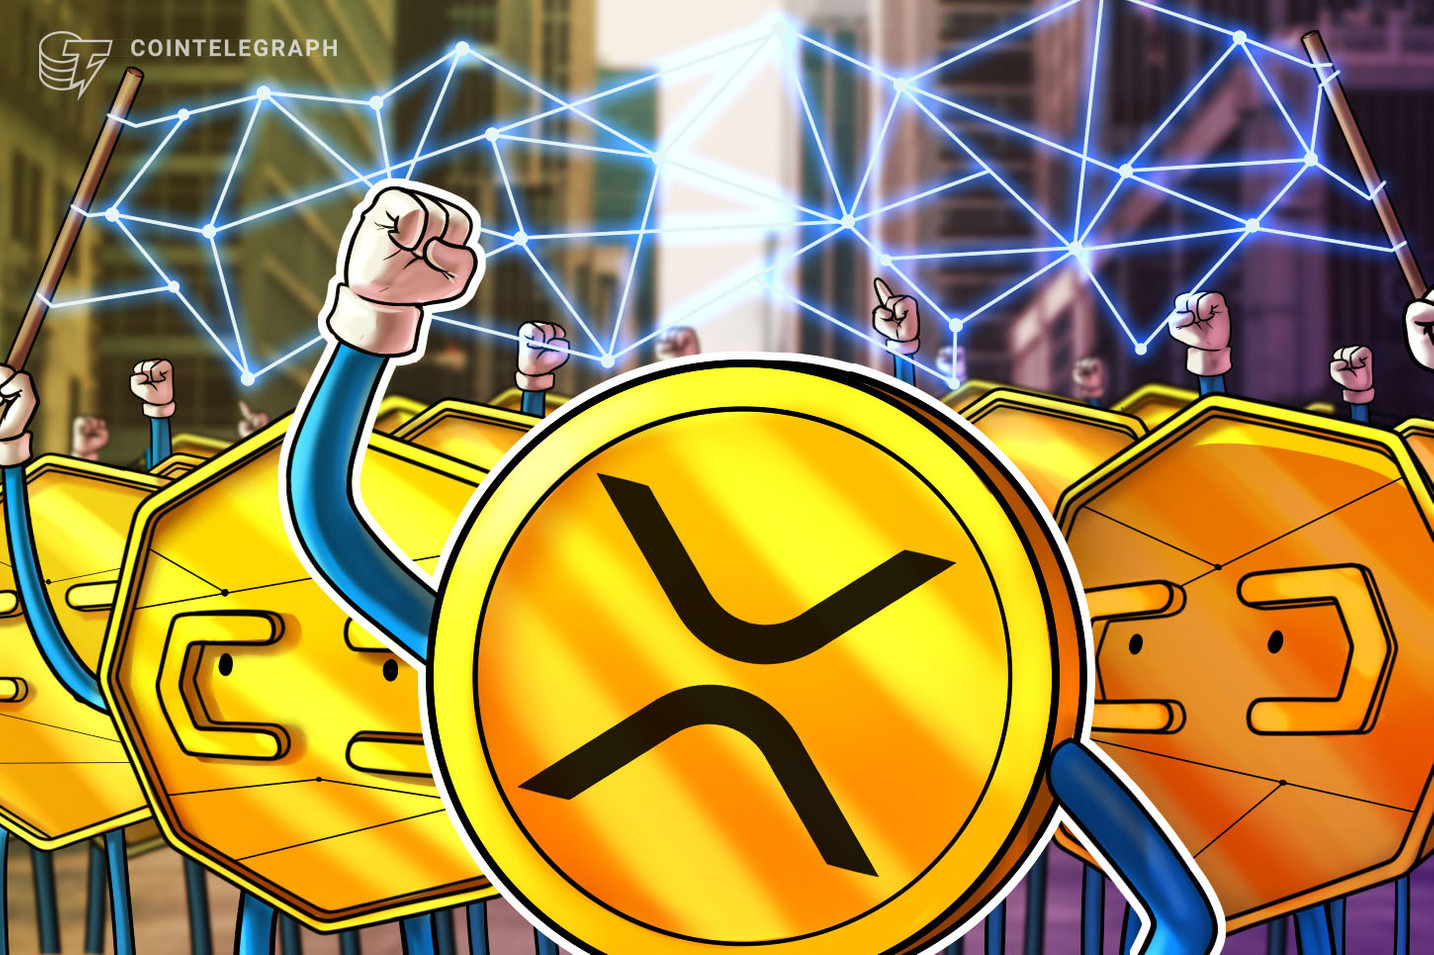 'Unleash the Utility!' — XRP Users Petition Ripple to Sell More Tokens